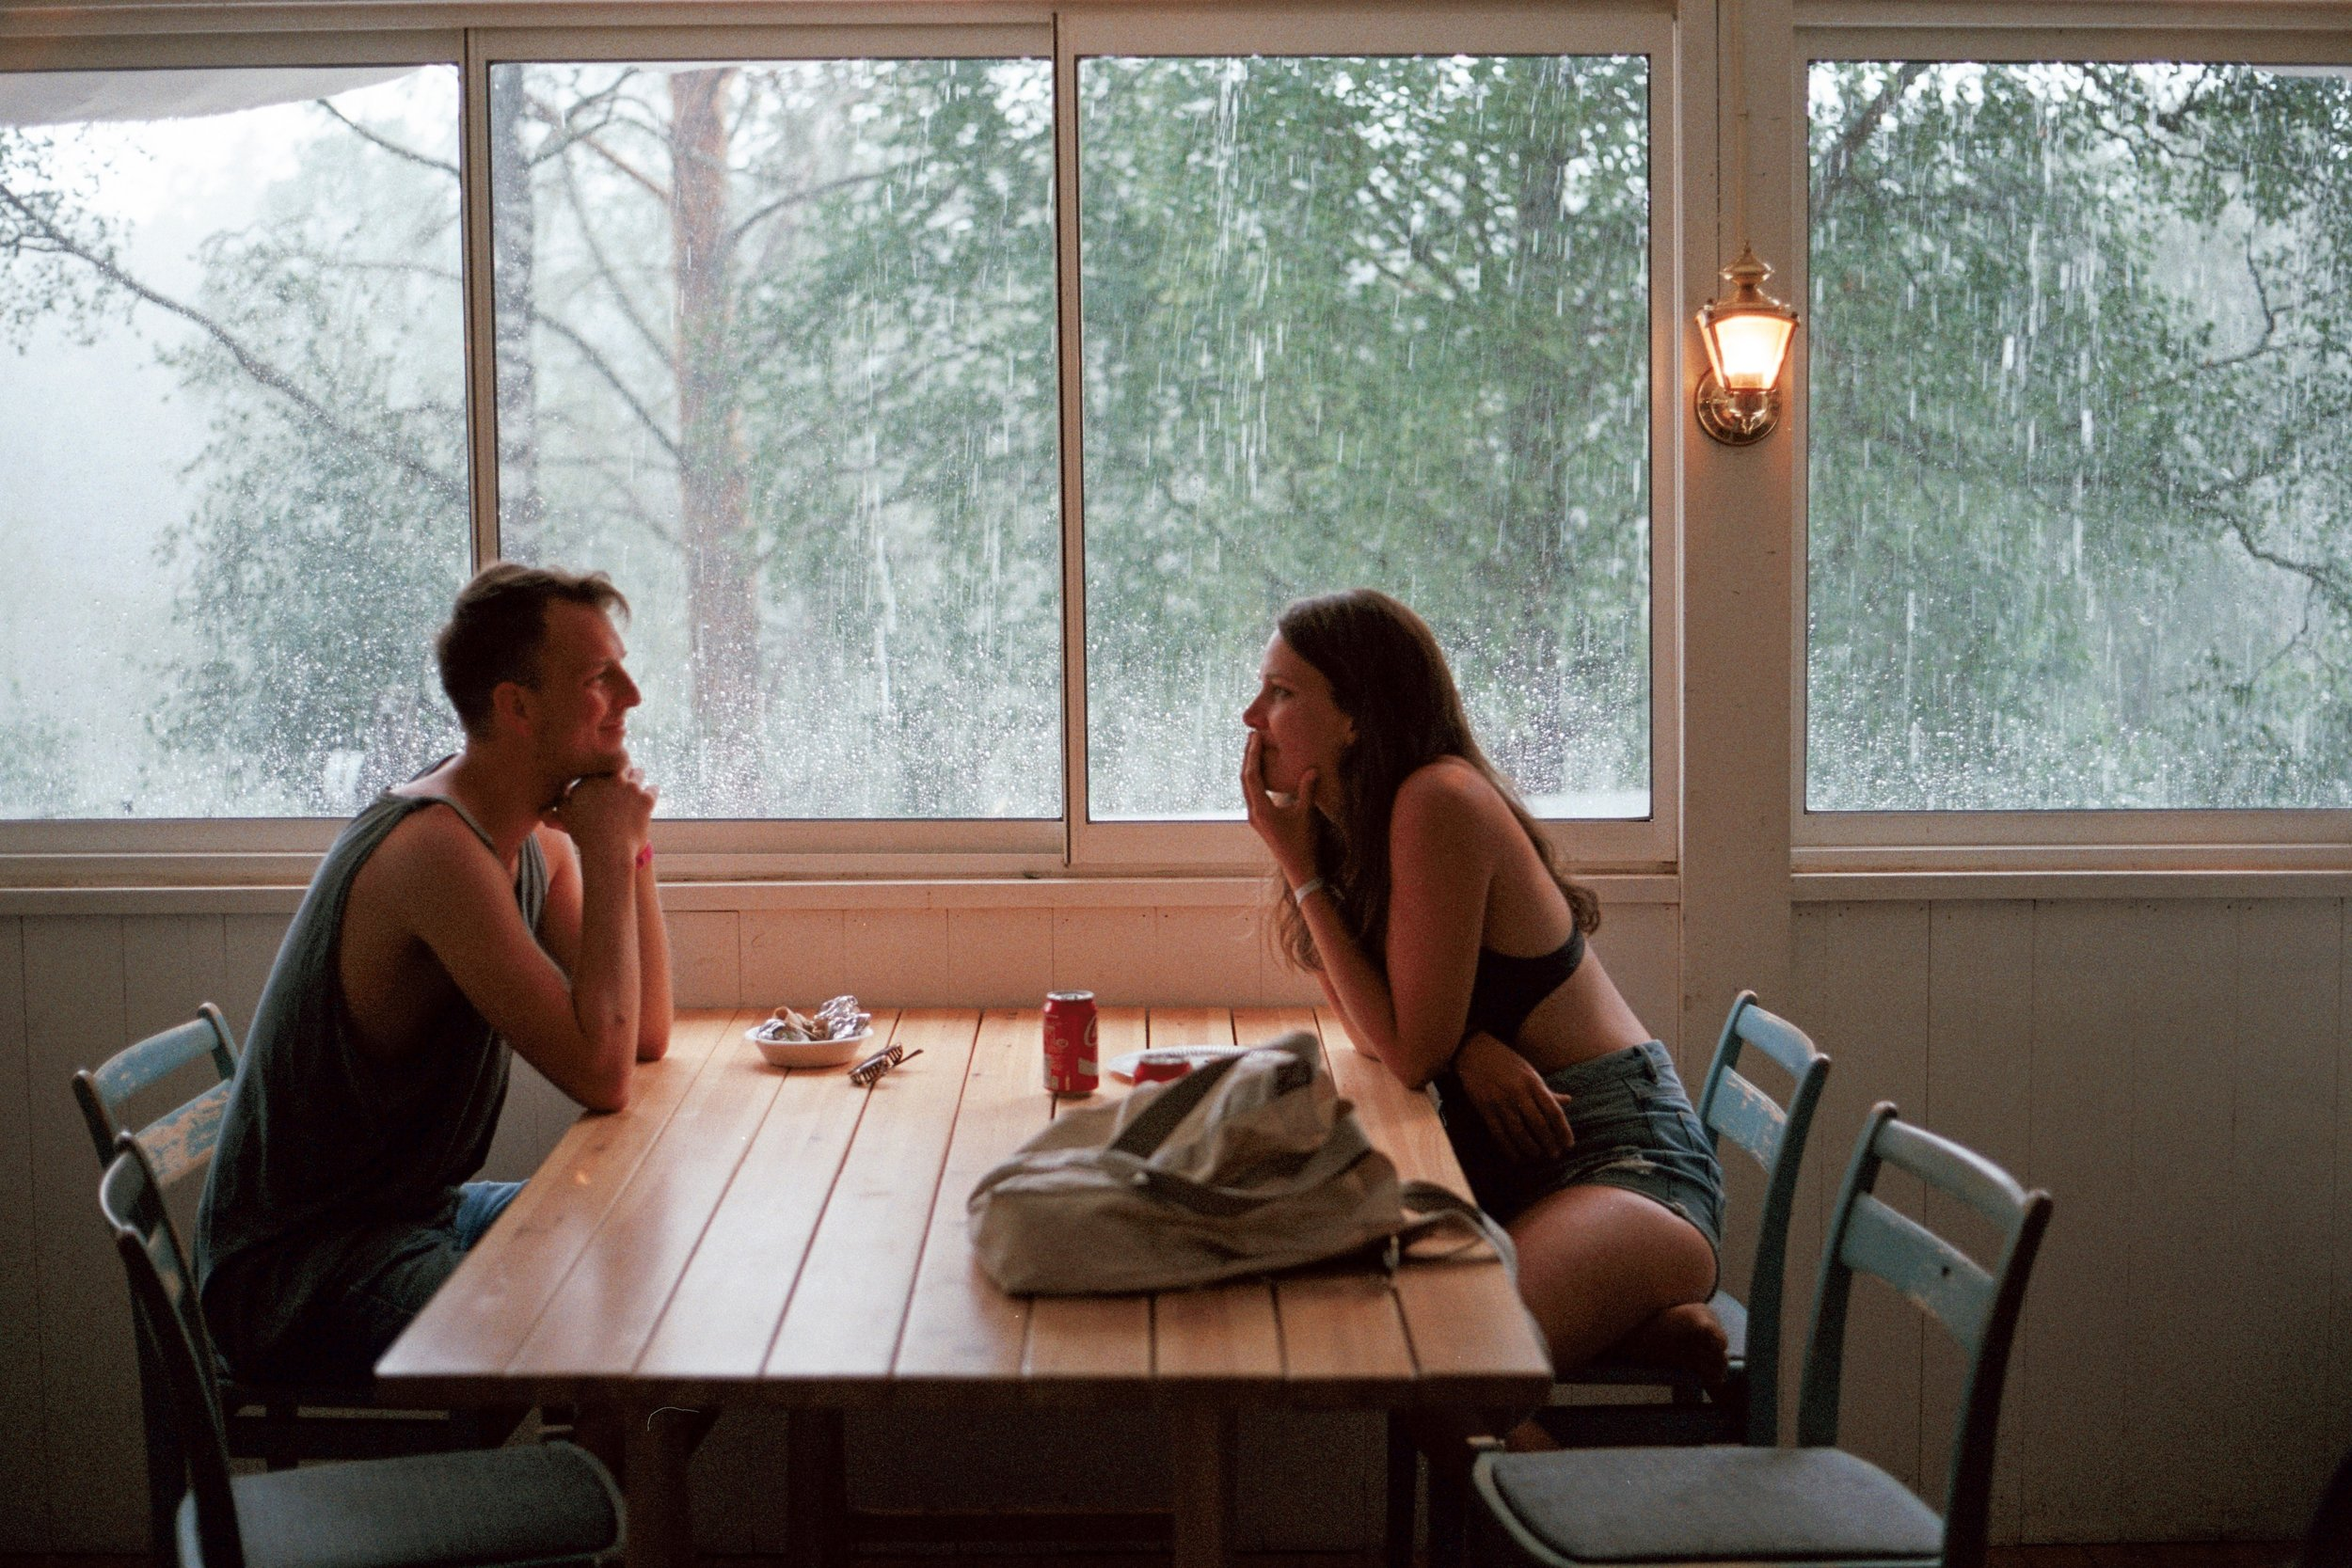 Body and language and empathy impact communication with your partner